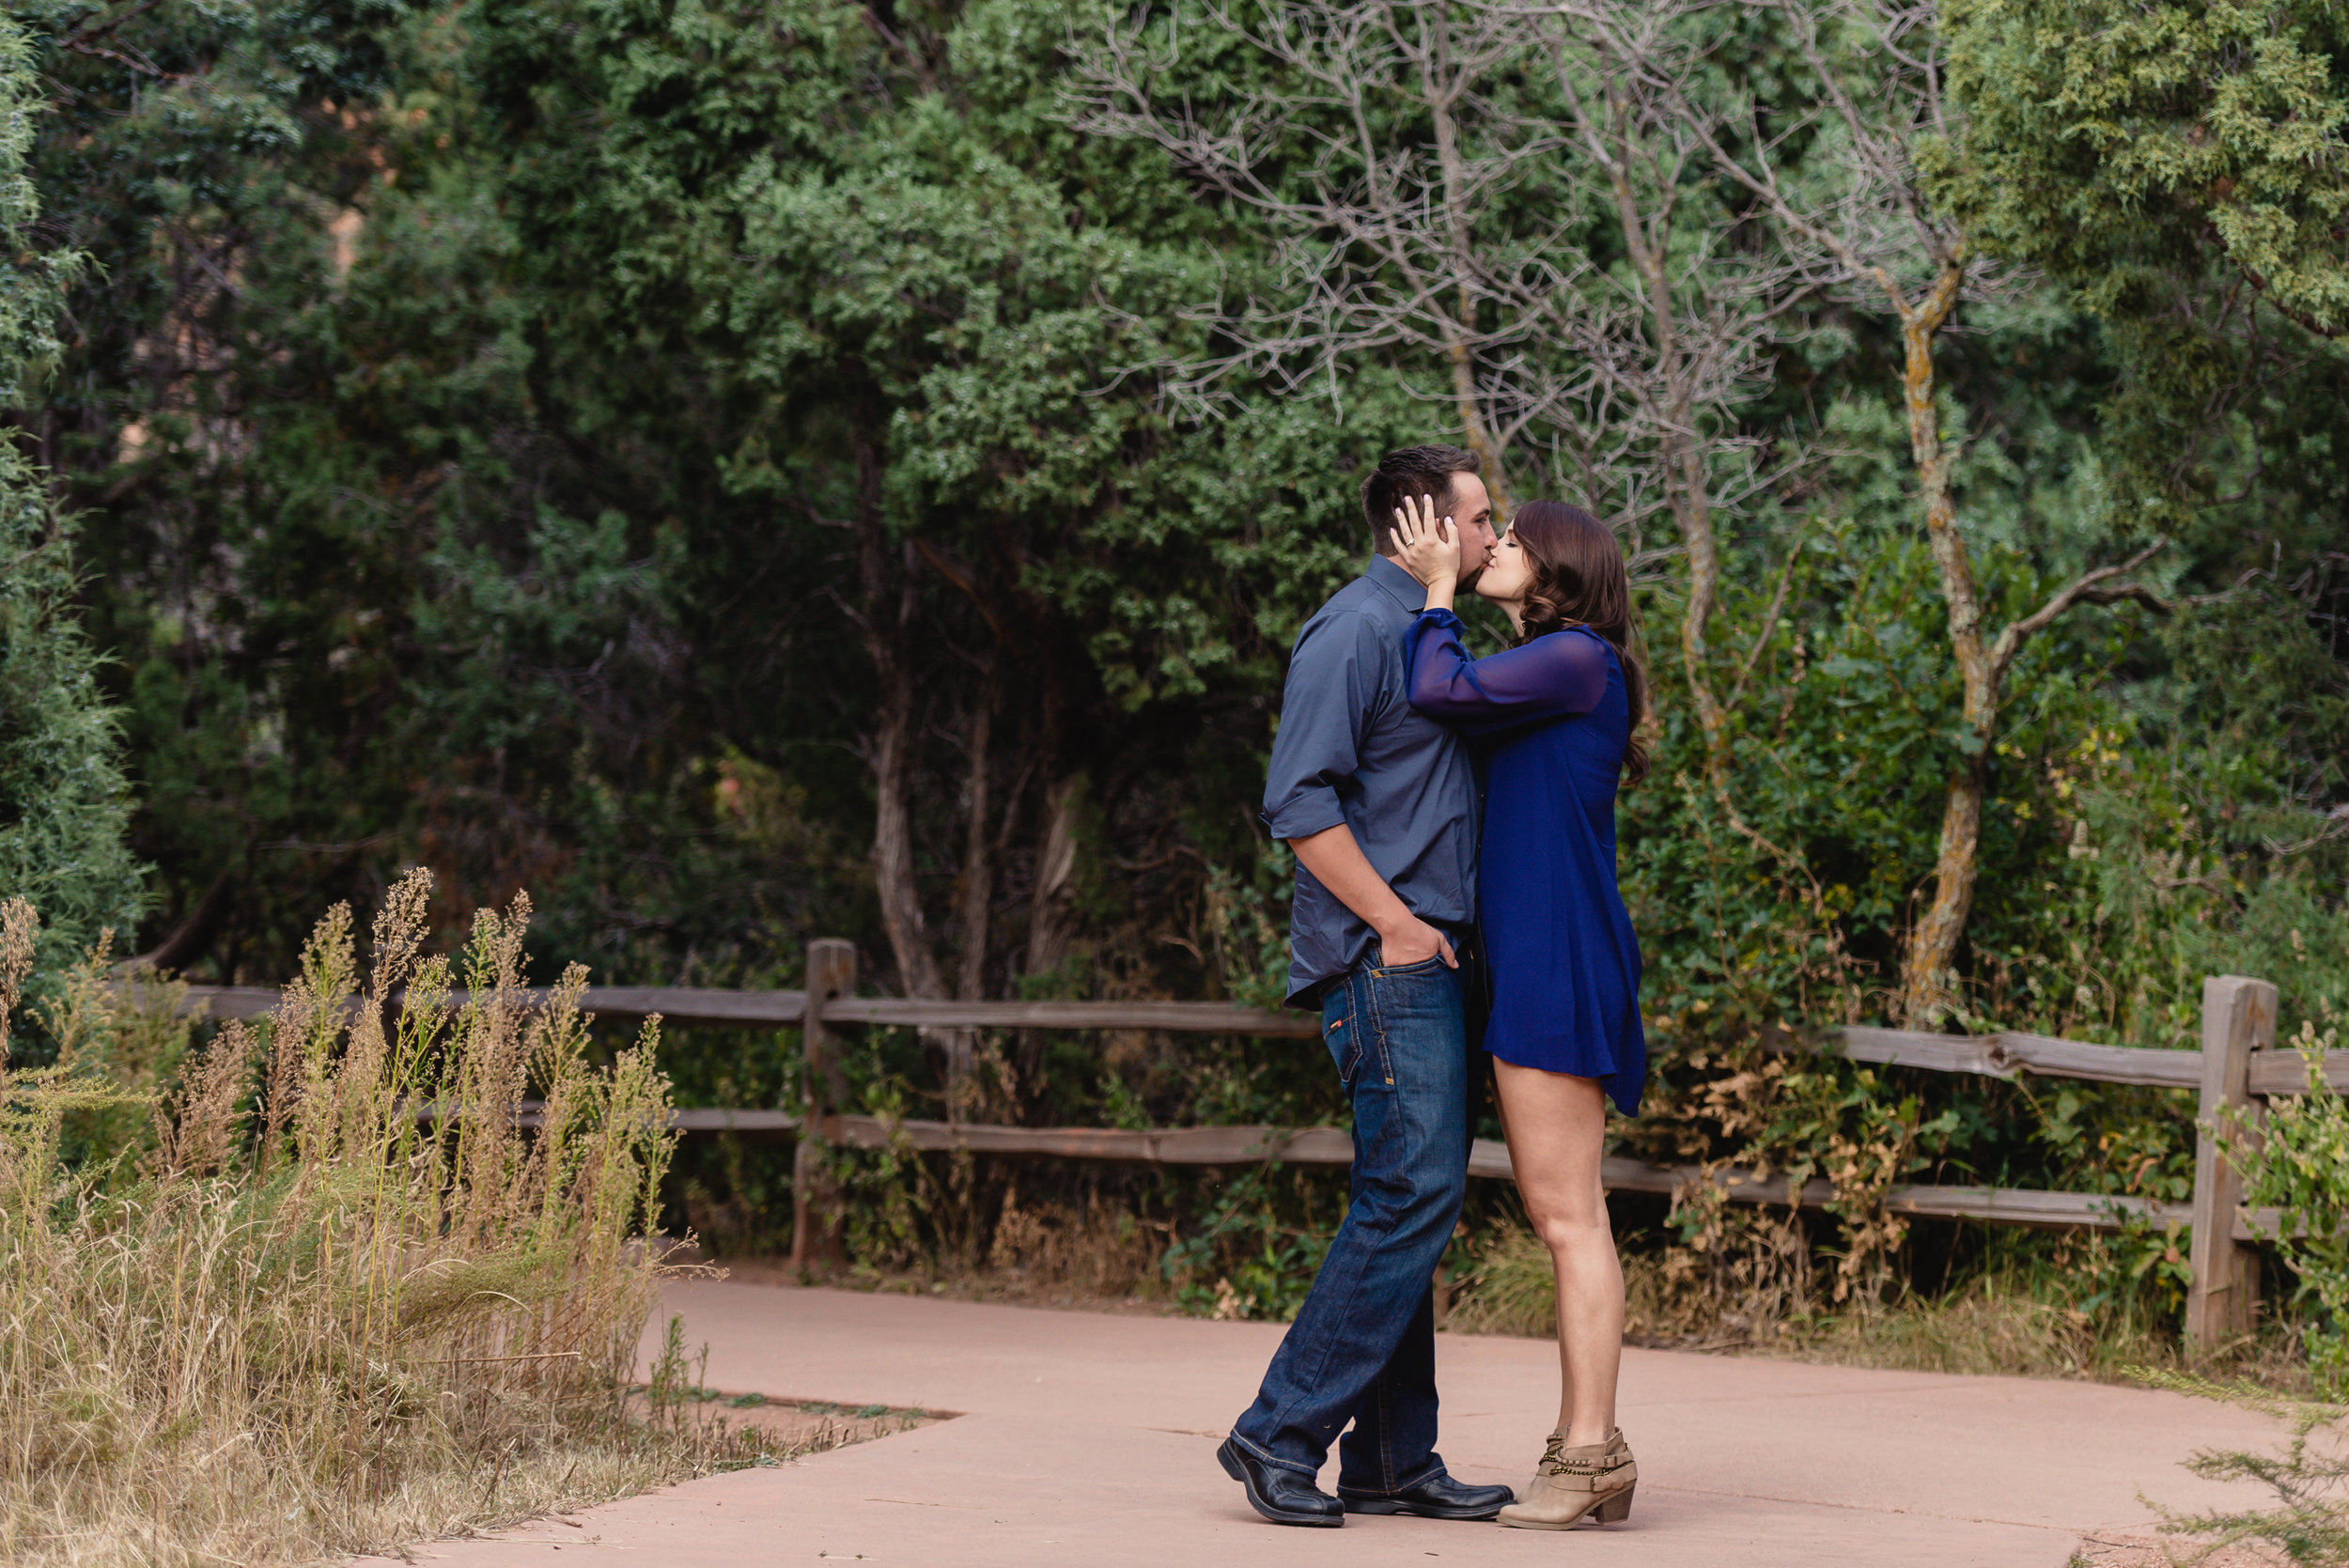 Surprise Proposal Photographer in Minnesota - Twin Cities Proposal Photography